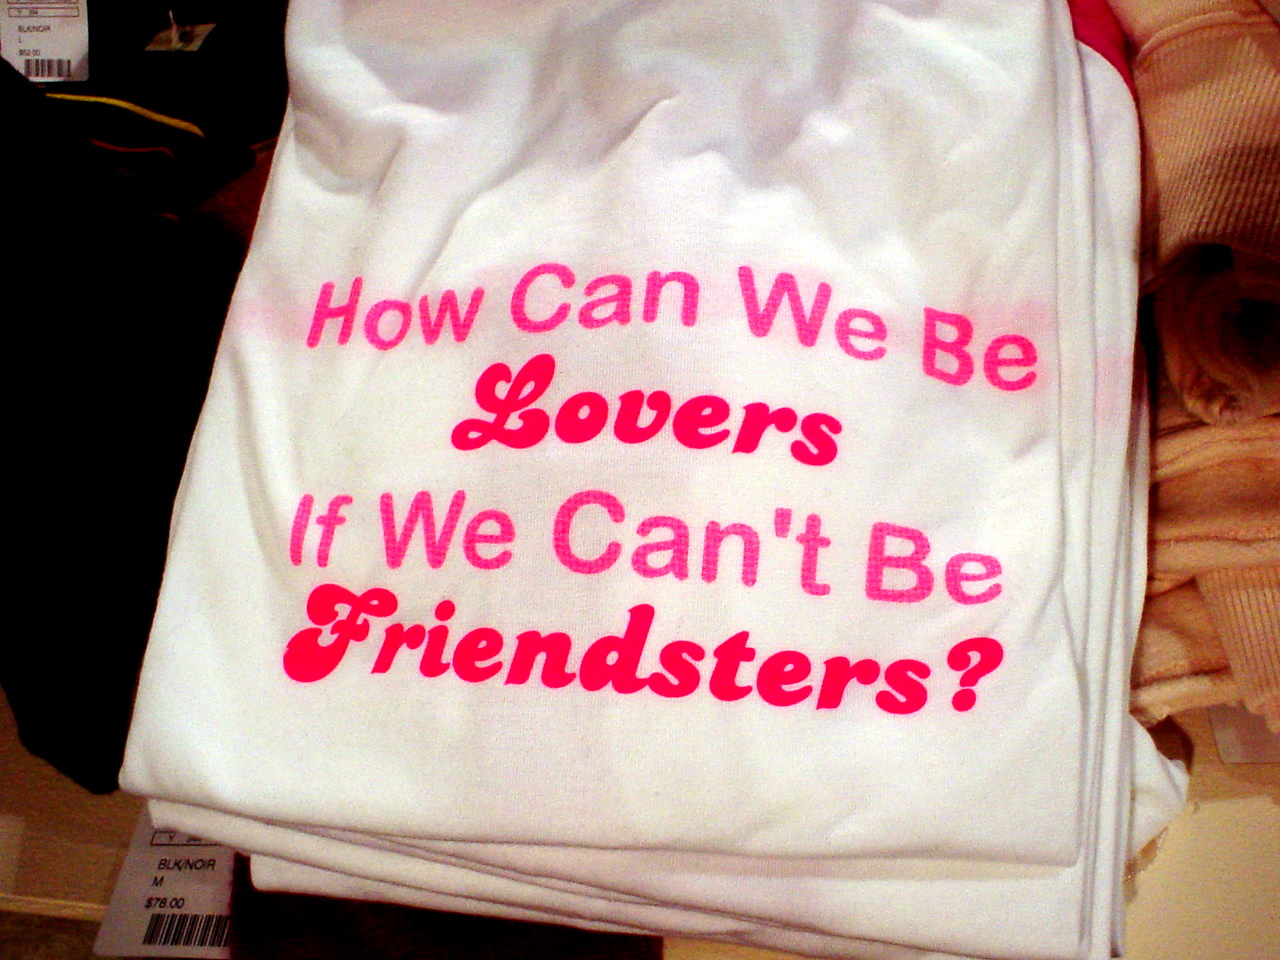 How can we be lovers if we can't be Friendsters?